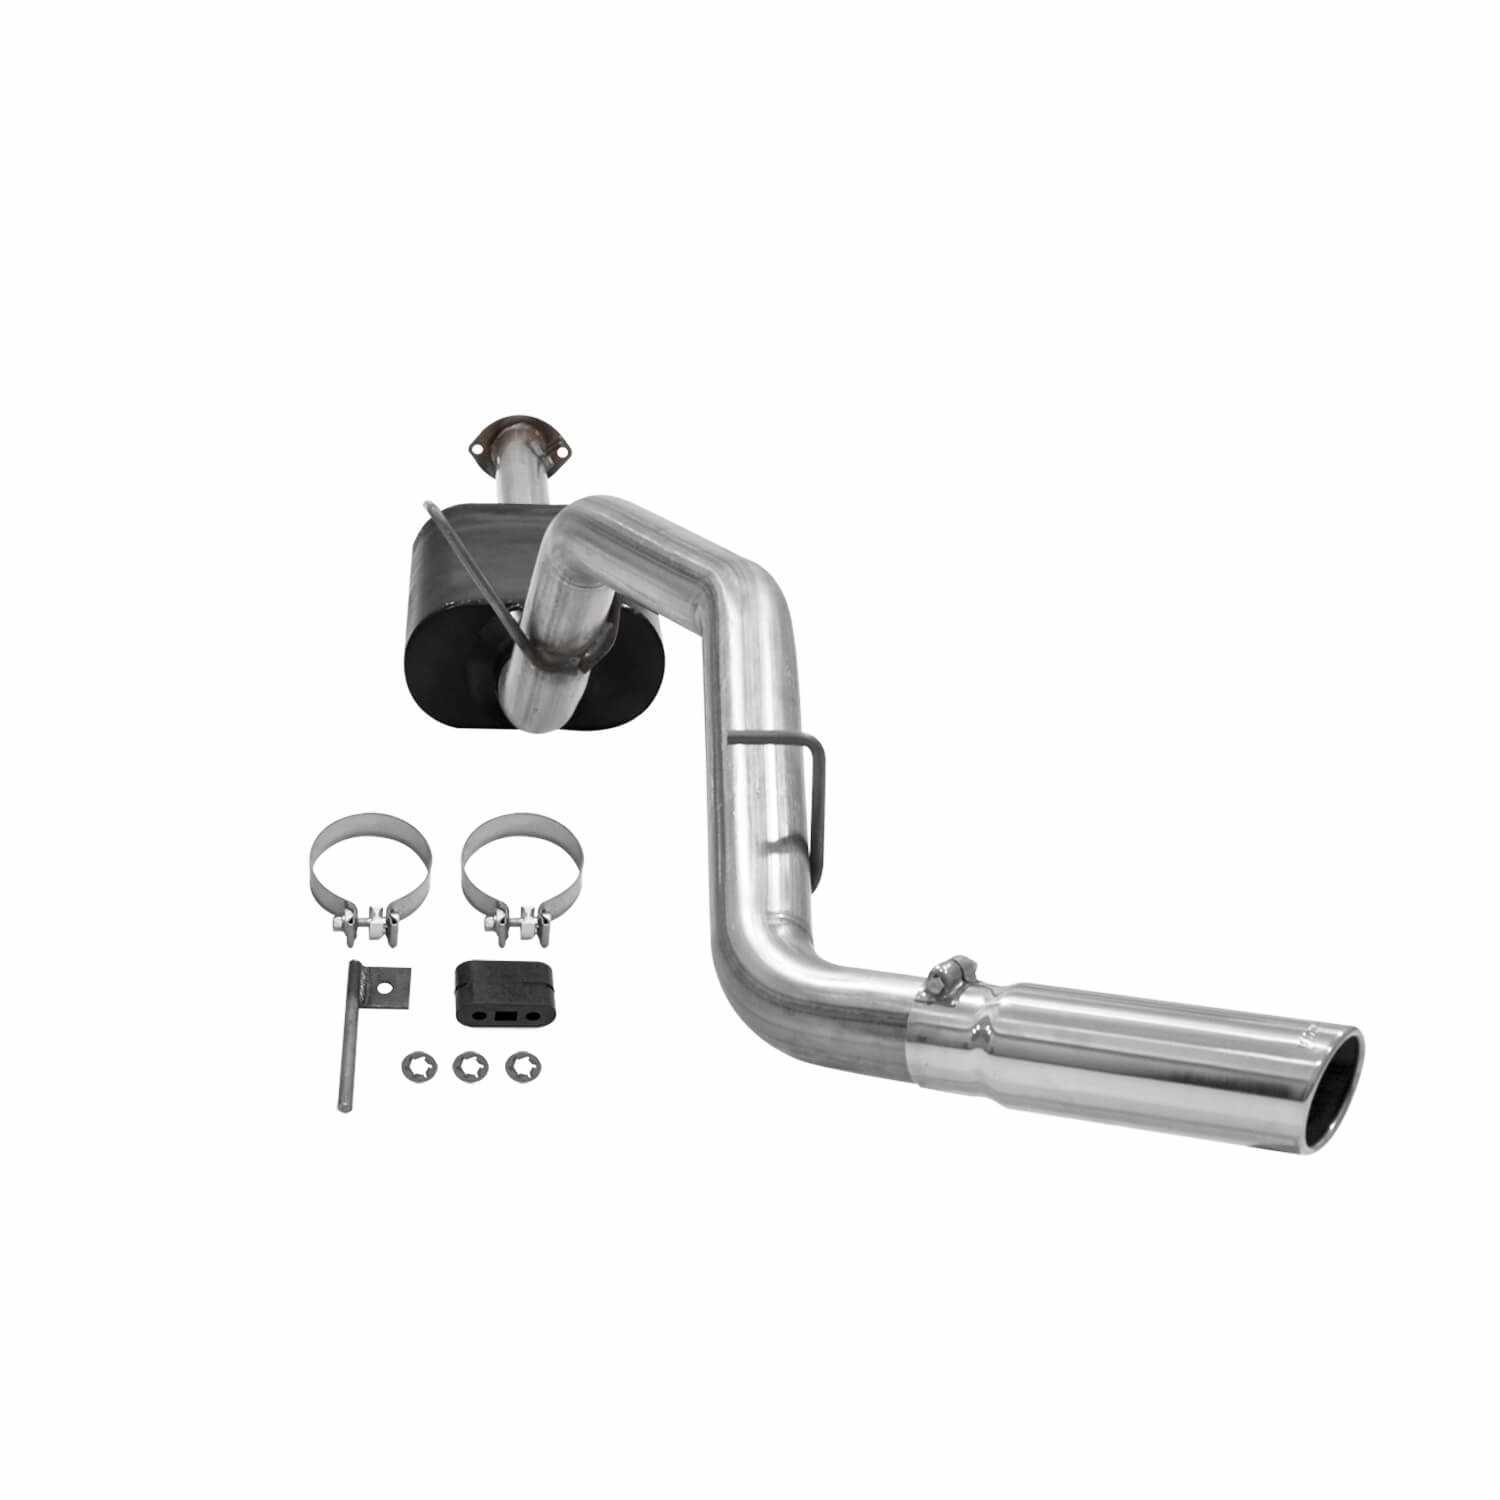 817519 Flowmaster American Thunder Cat Back Exhaust System